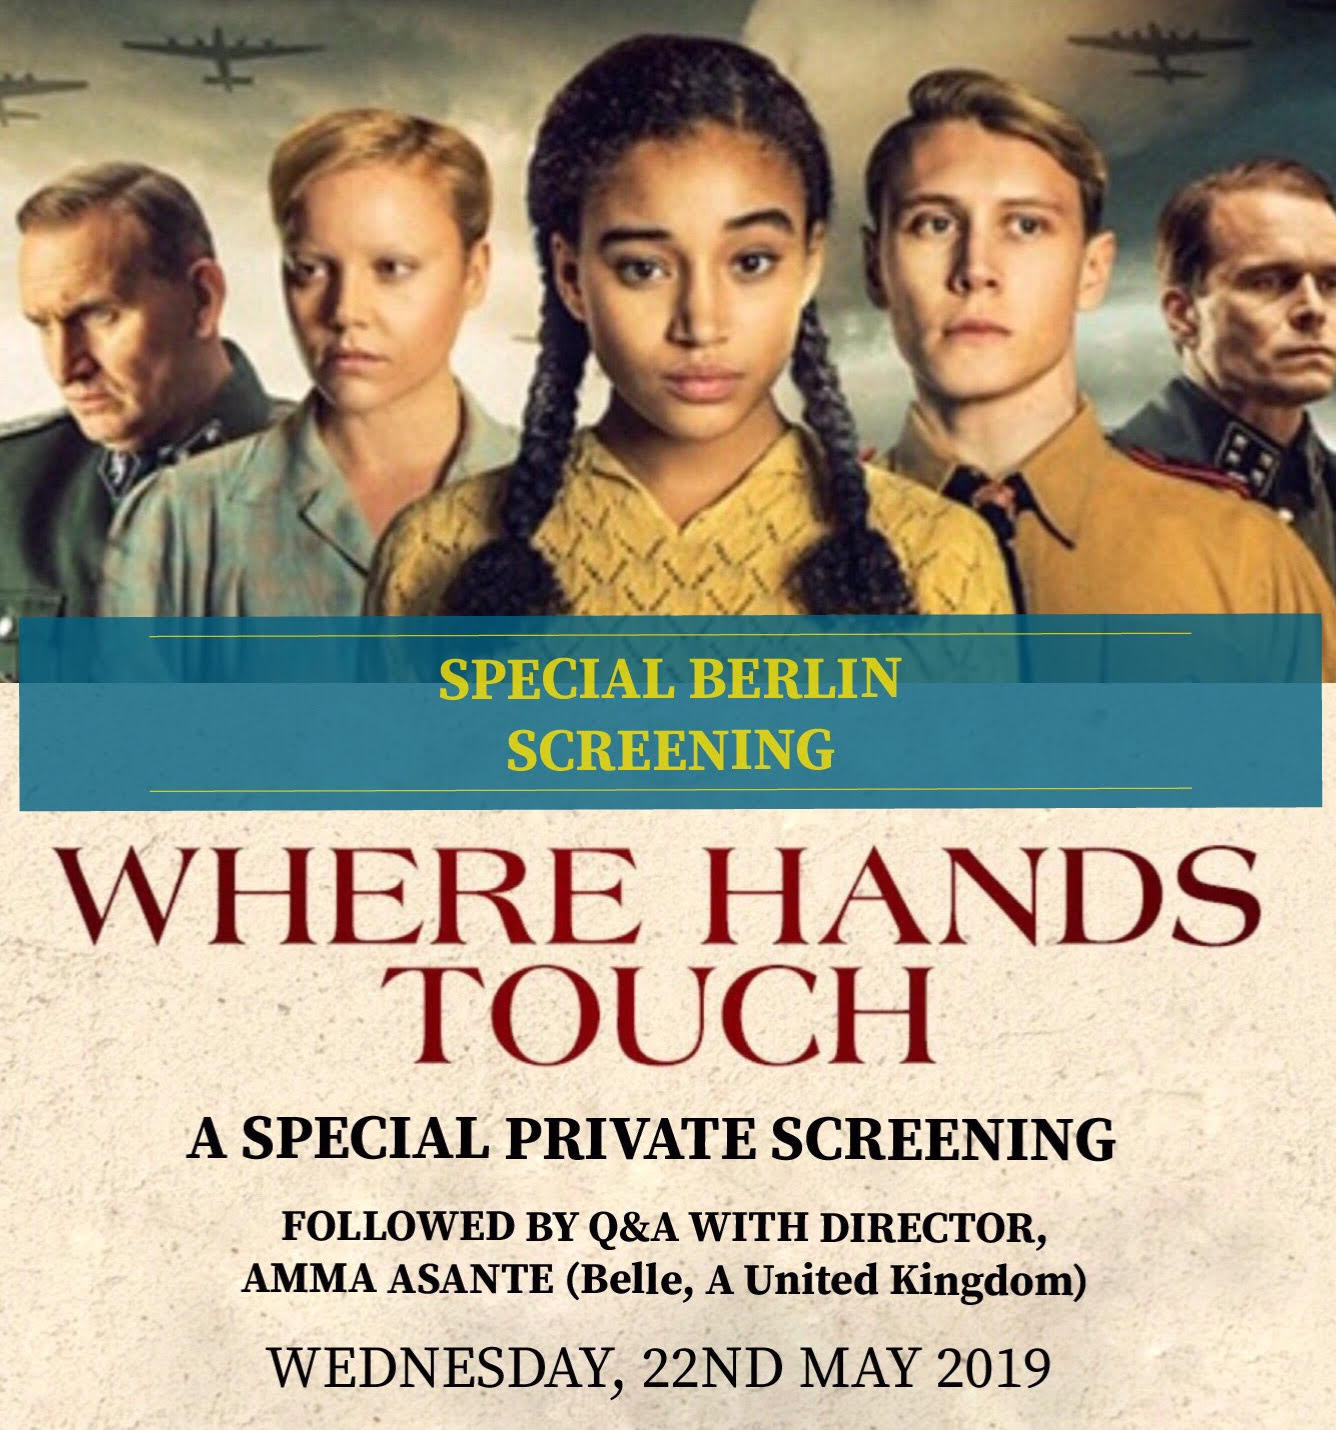 Where Hands Touch - Special Berlin Screening